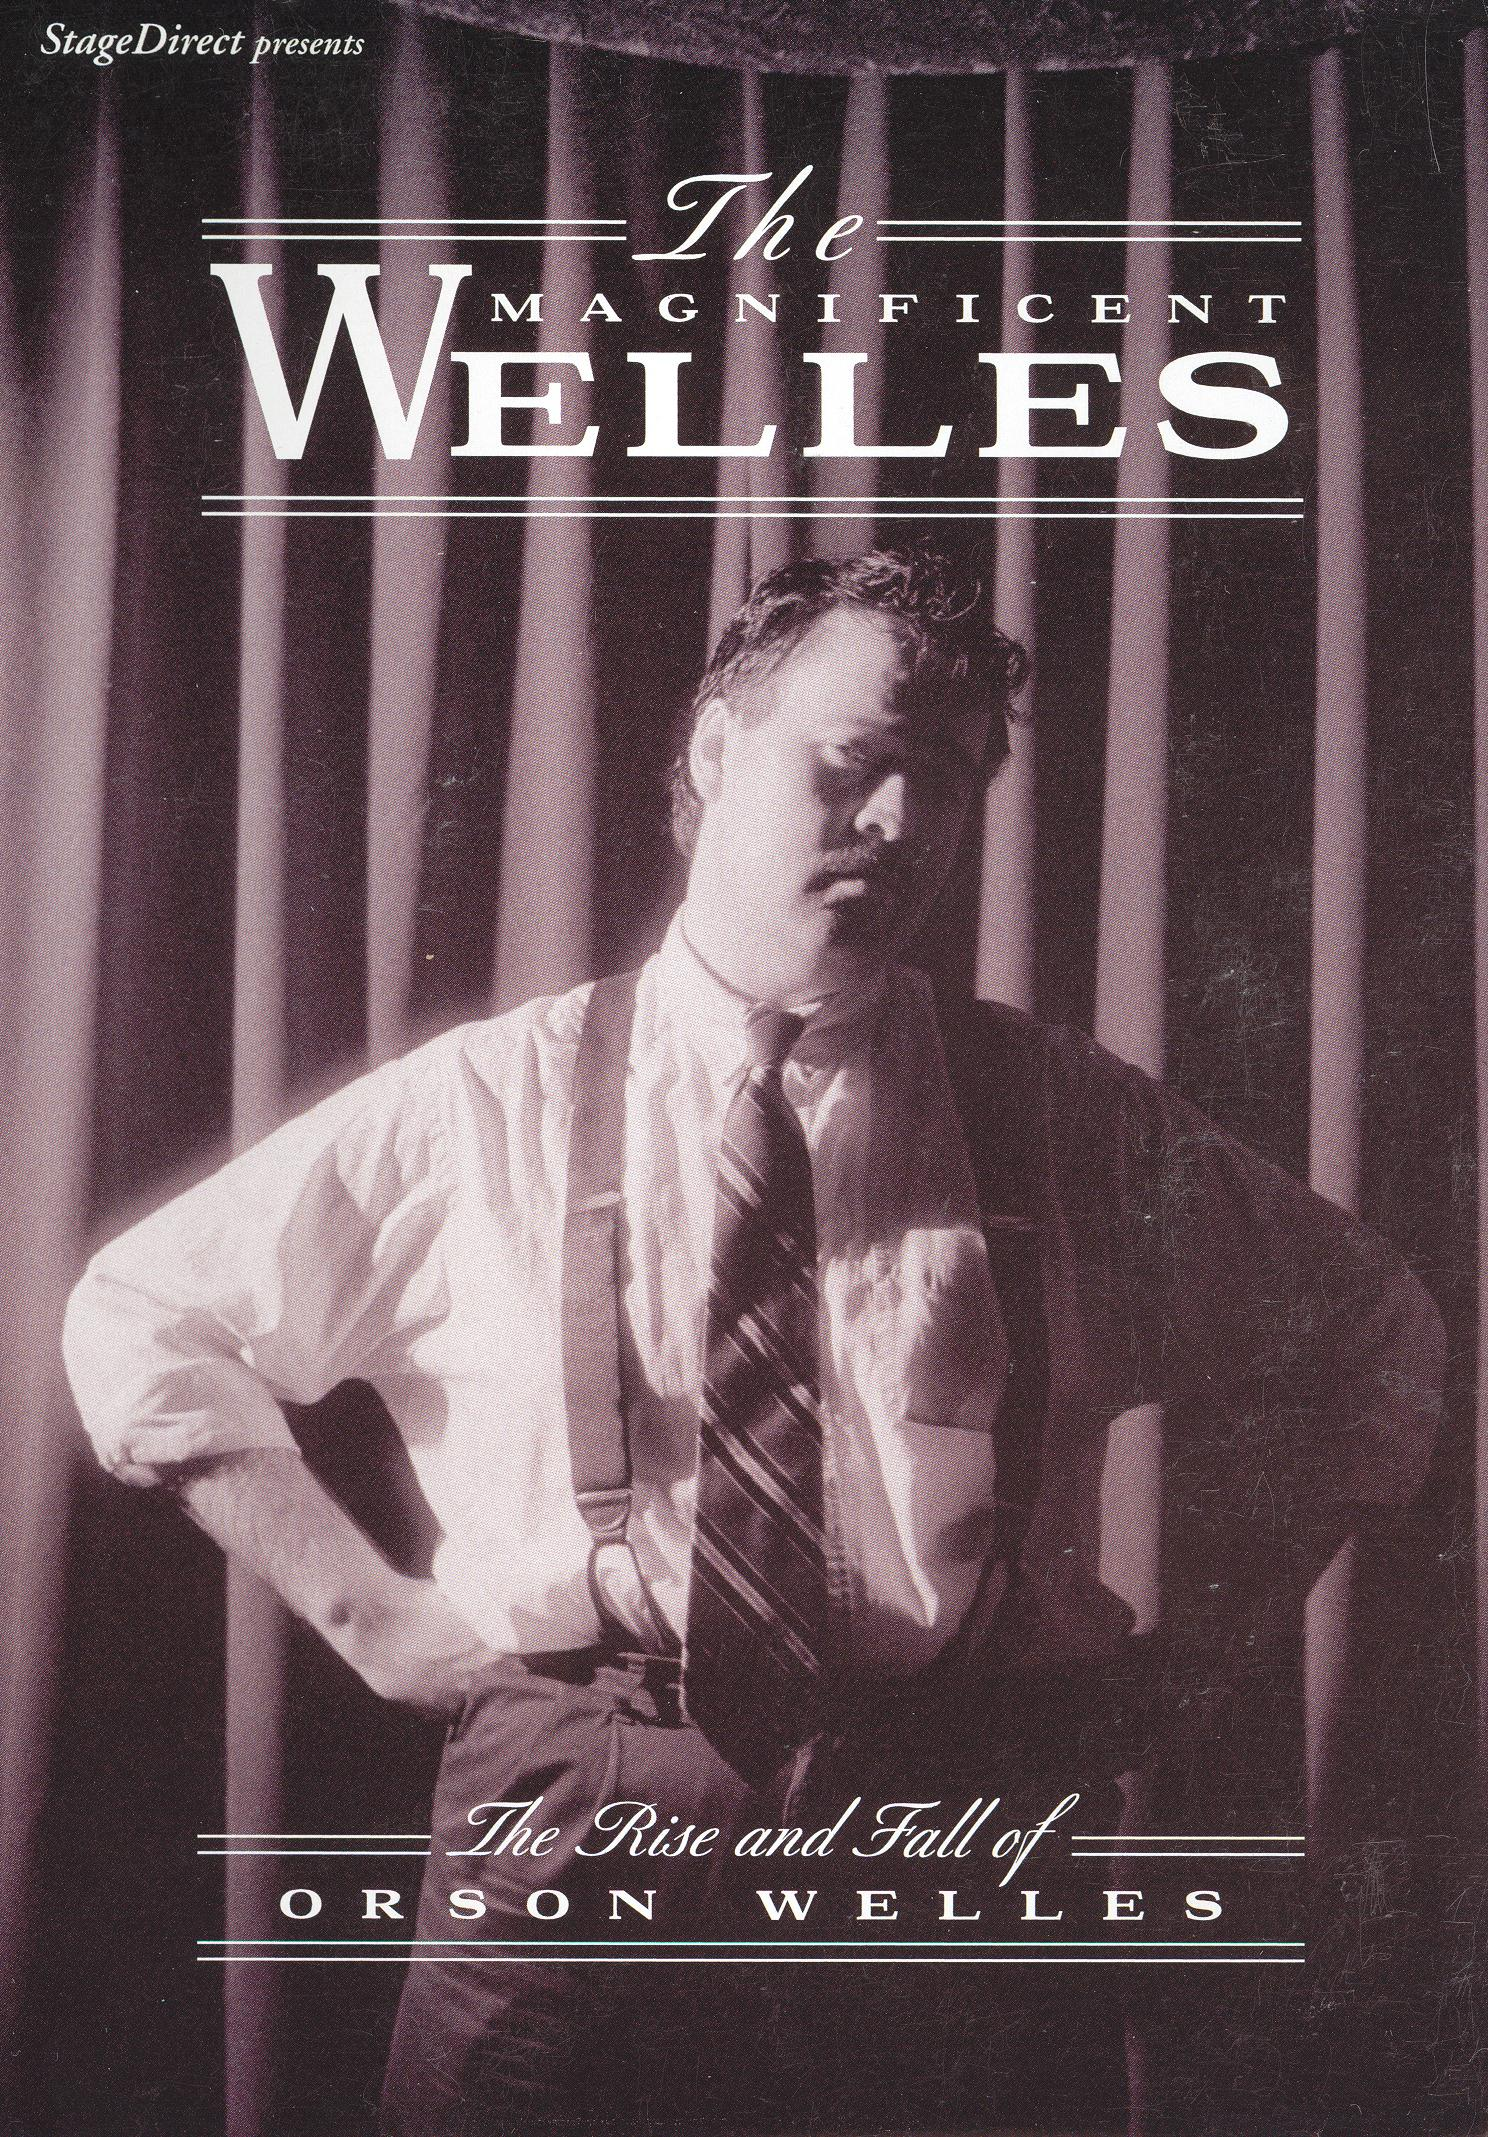 The Magnificent Welles: The Rise and Fall of Orson Welles